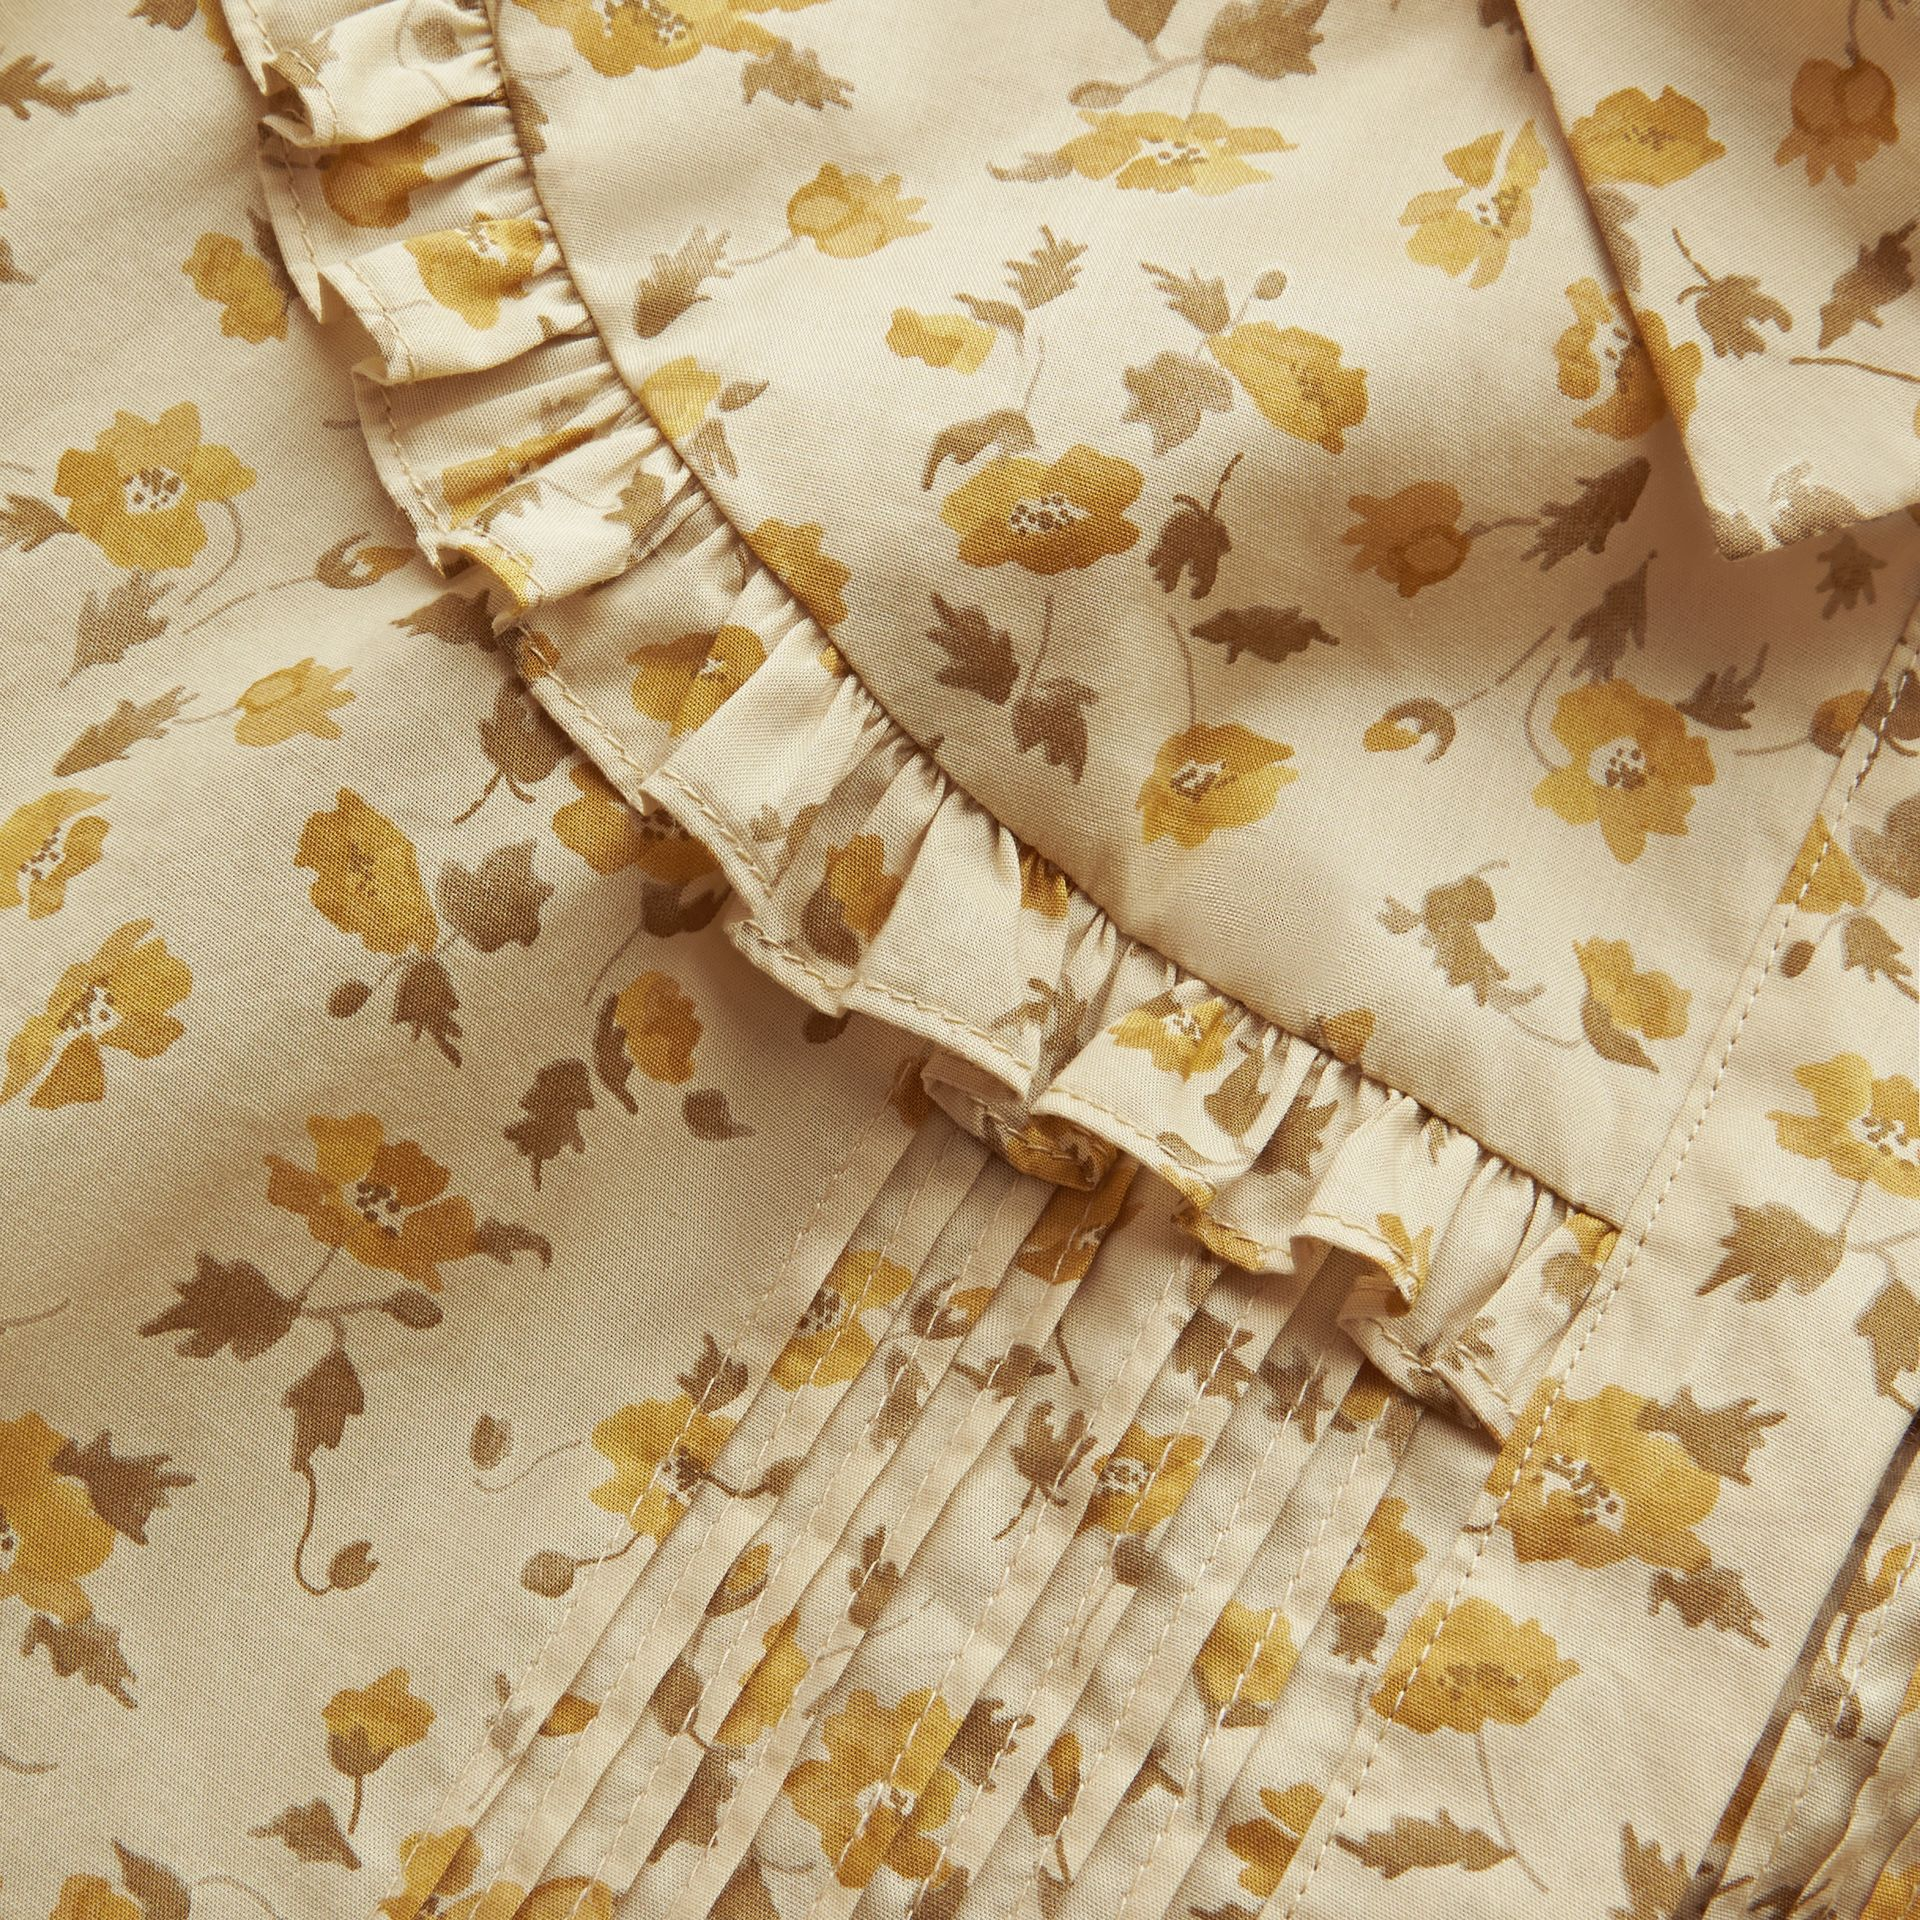 Ruffle Yoke Floral Print Cotton Shirt in Chalk Yellow - Women | Burberry - gallery image 2